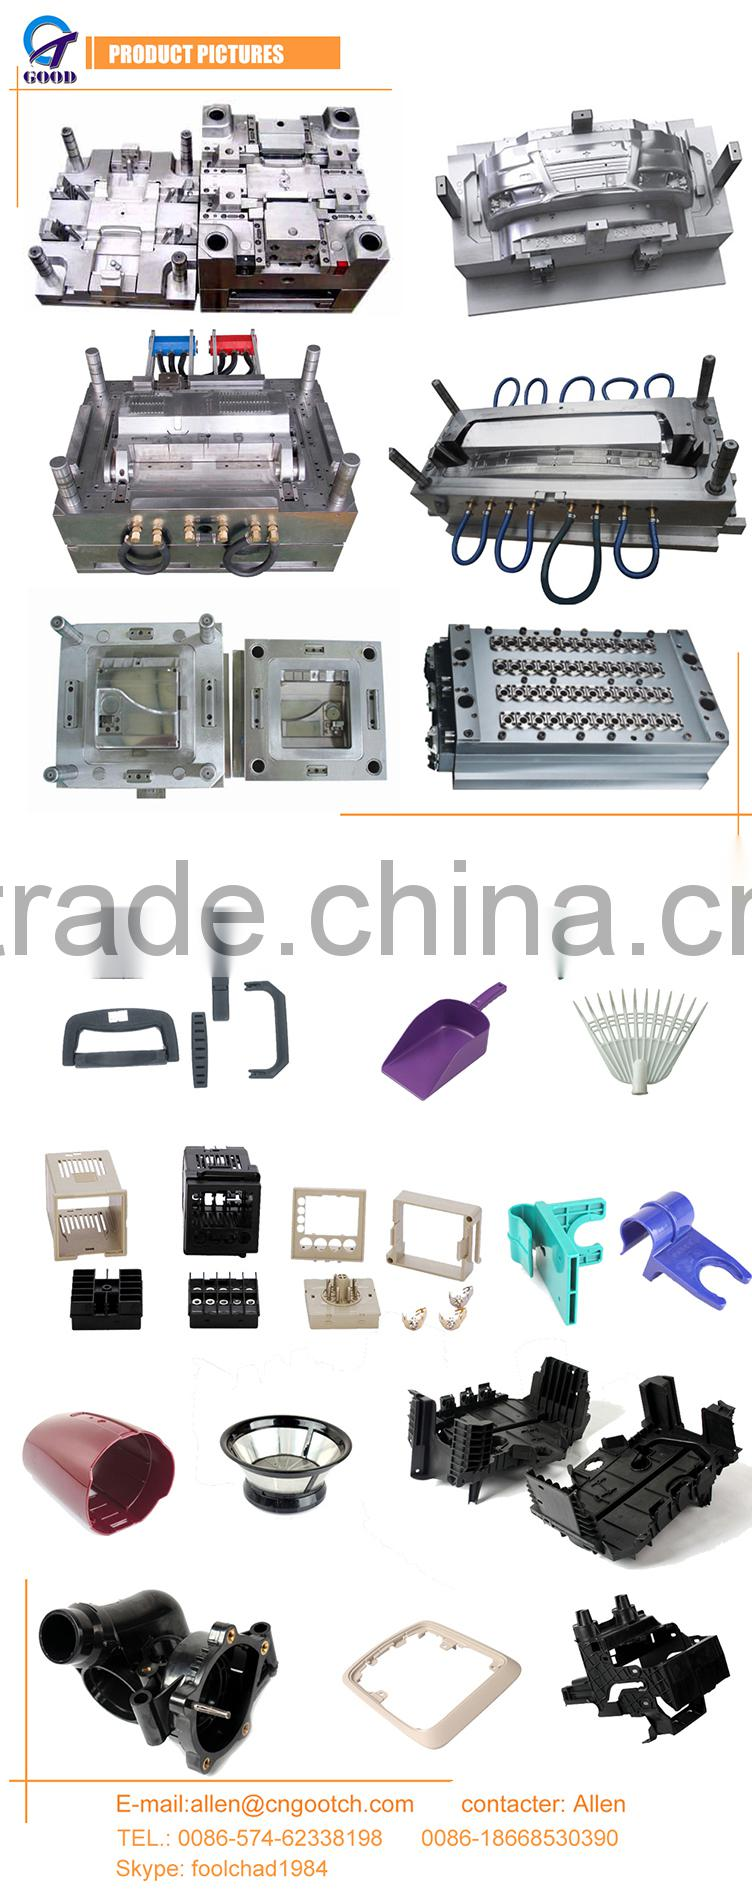 china plastic mould injection, plastic mold, plastic injection mould makingchina plastic mould injection, plastic mold, plastic